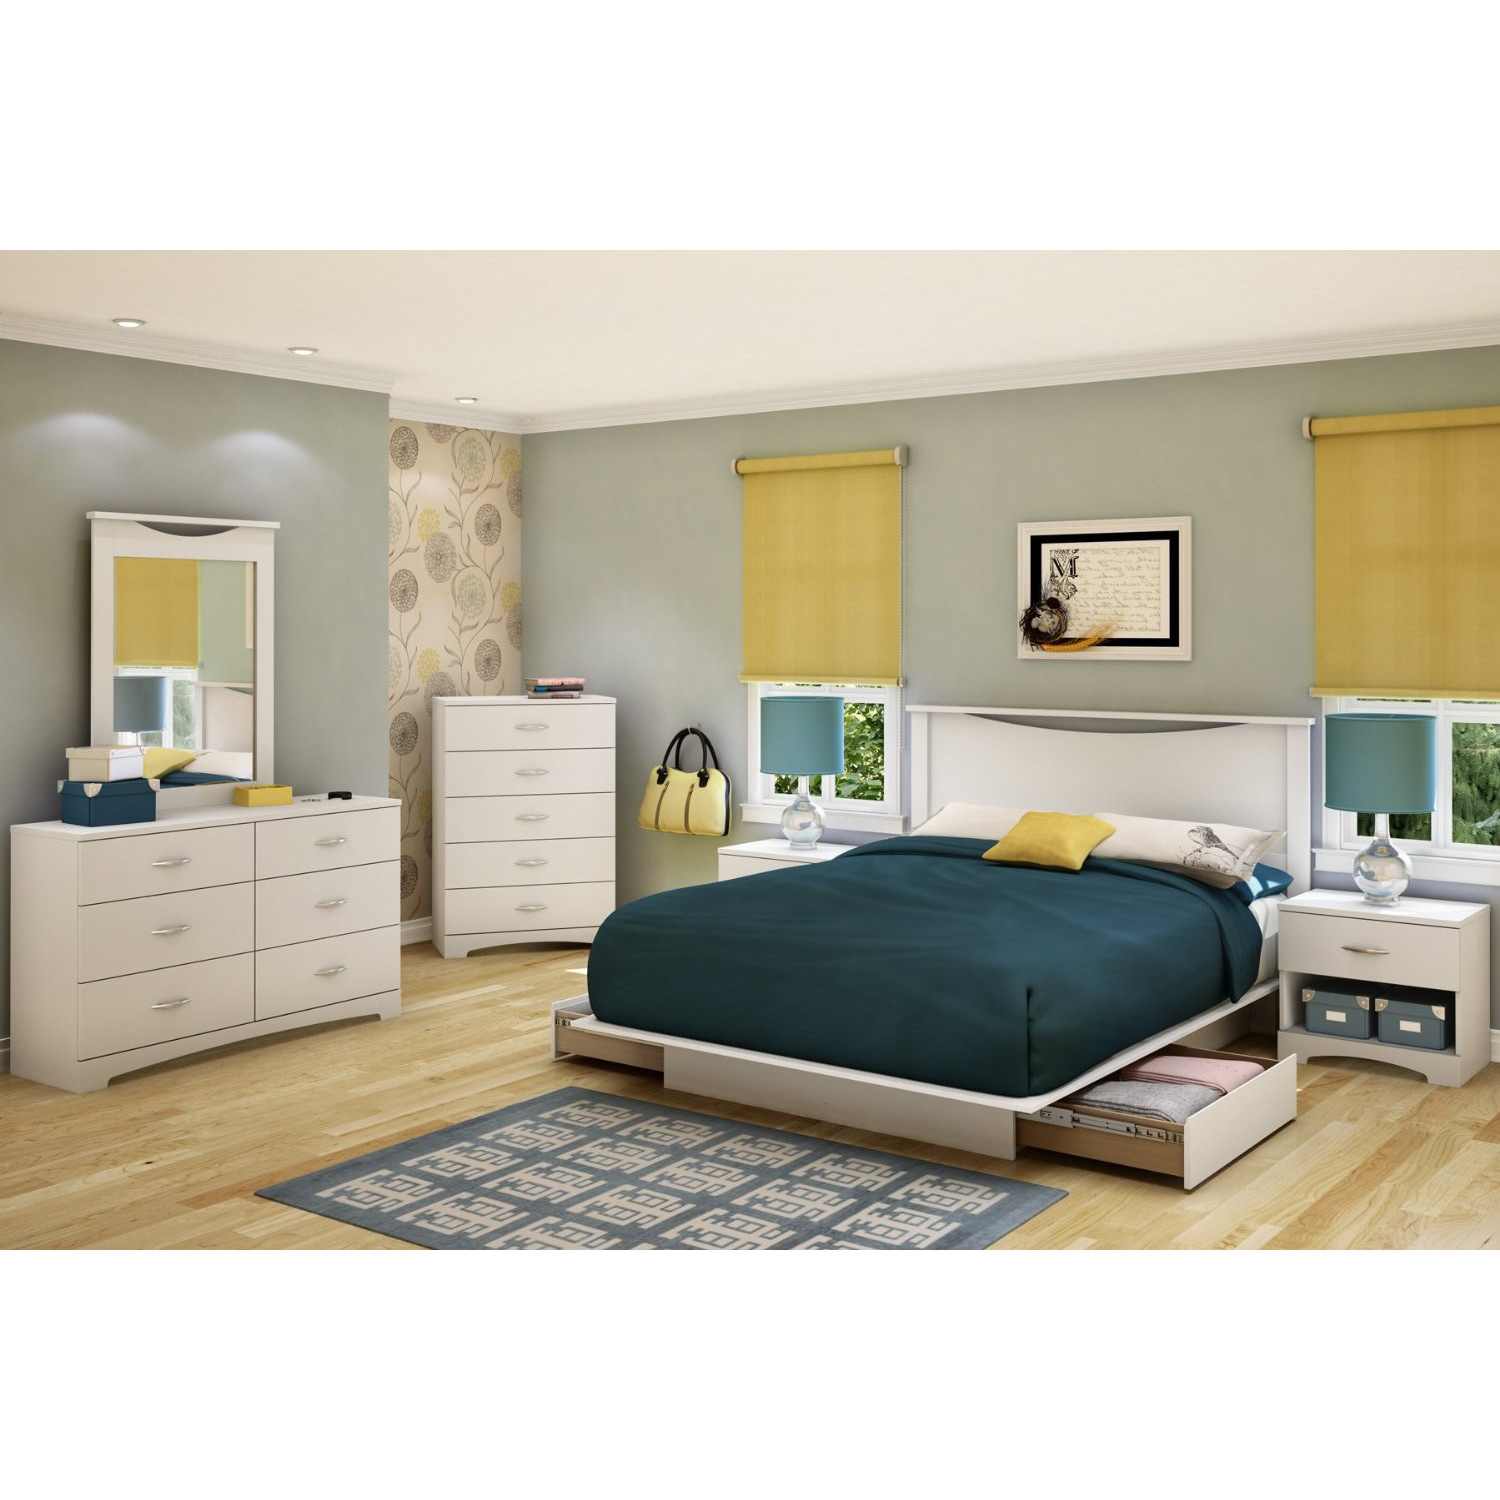 Bed frame design with drawers - Platform Bed Storage Retail Price